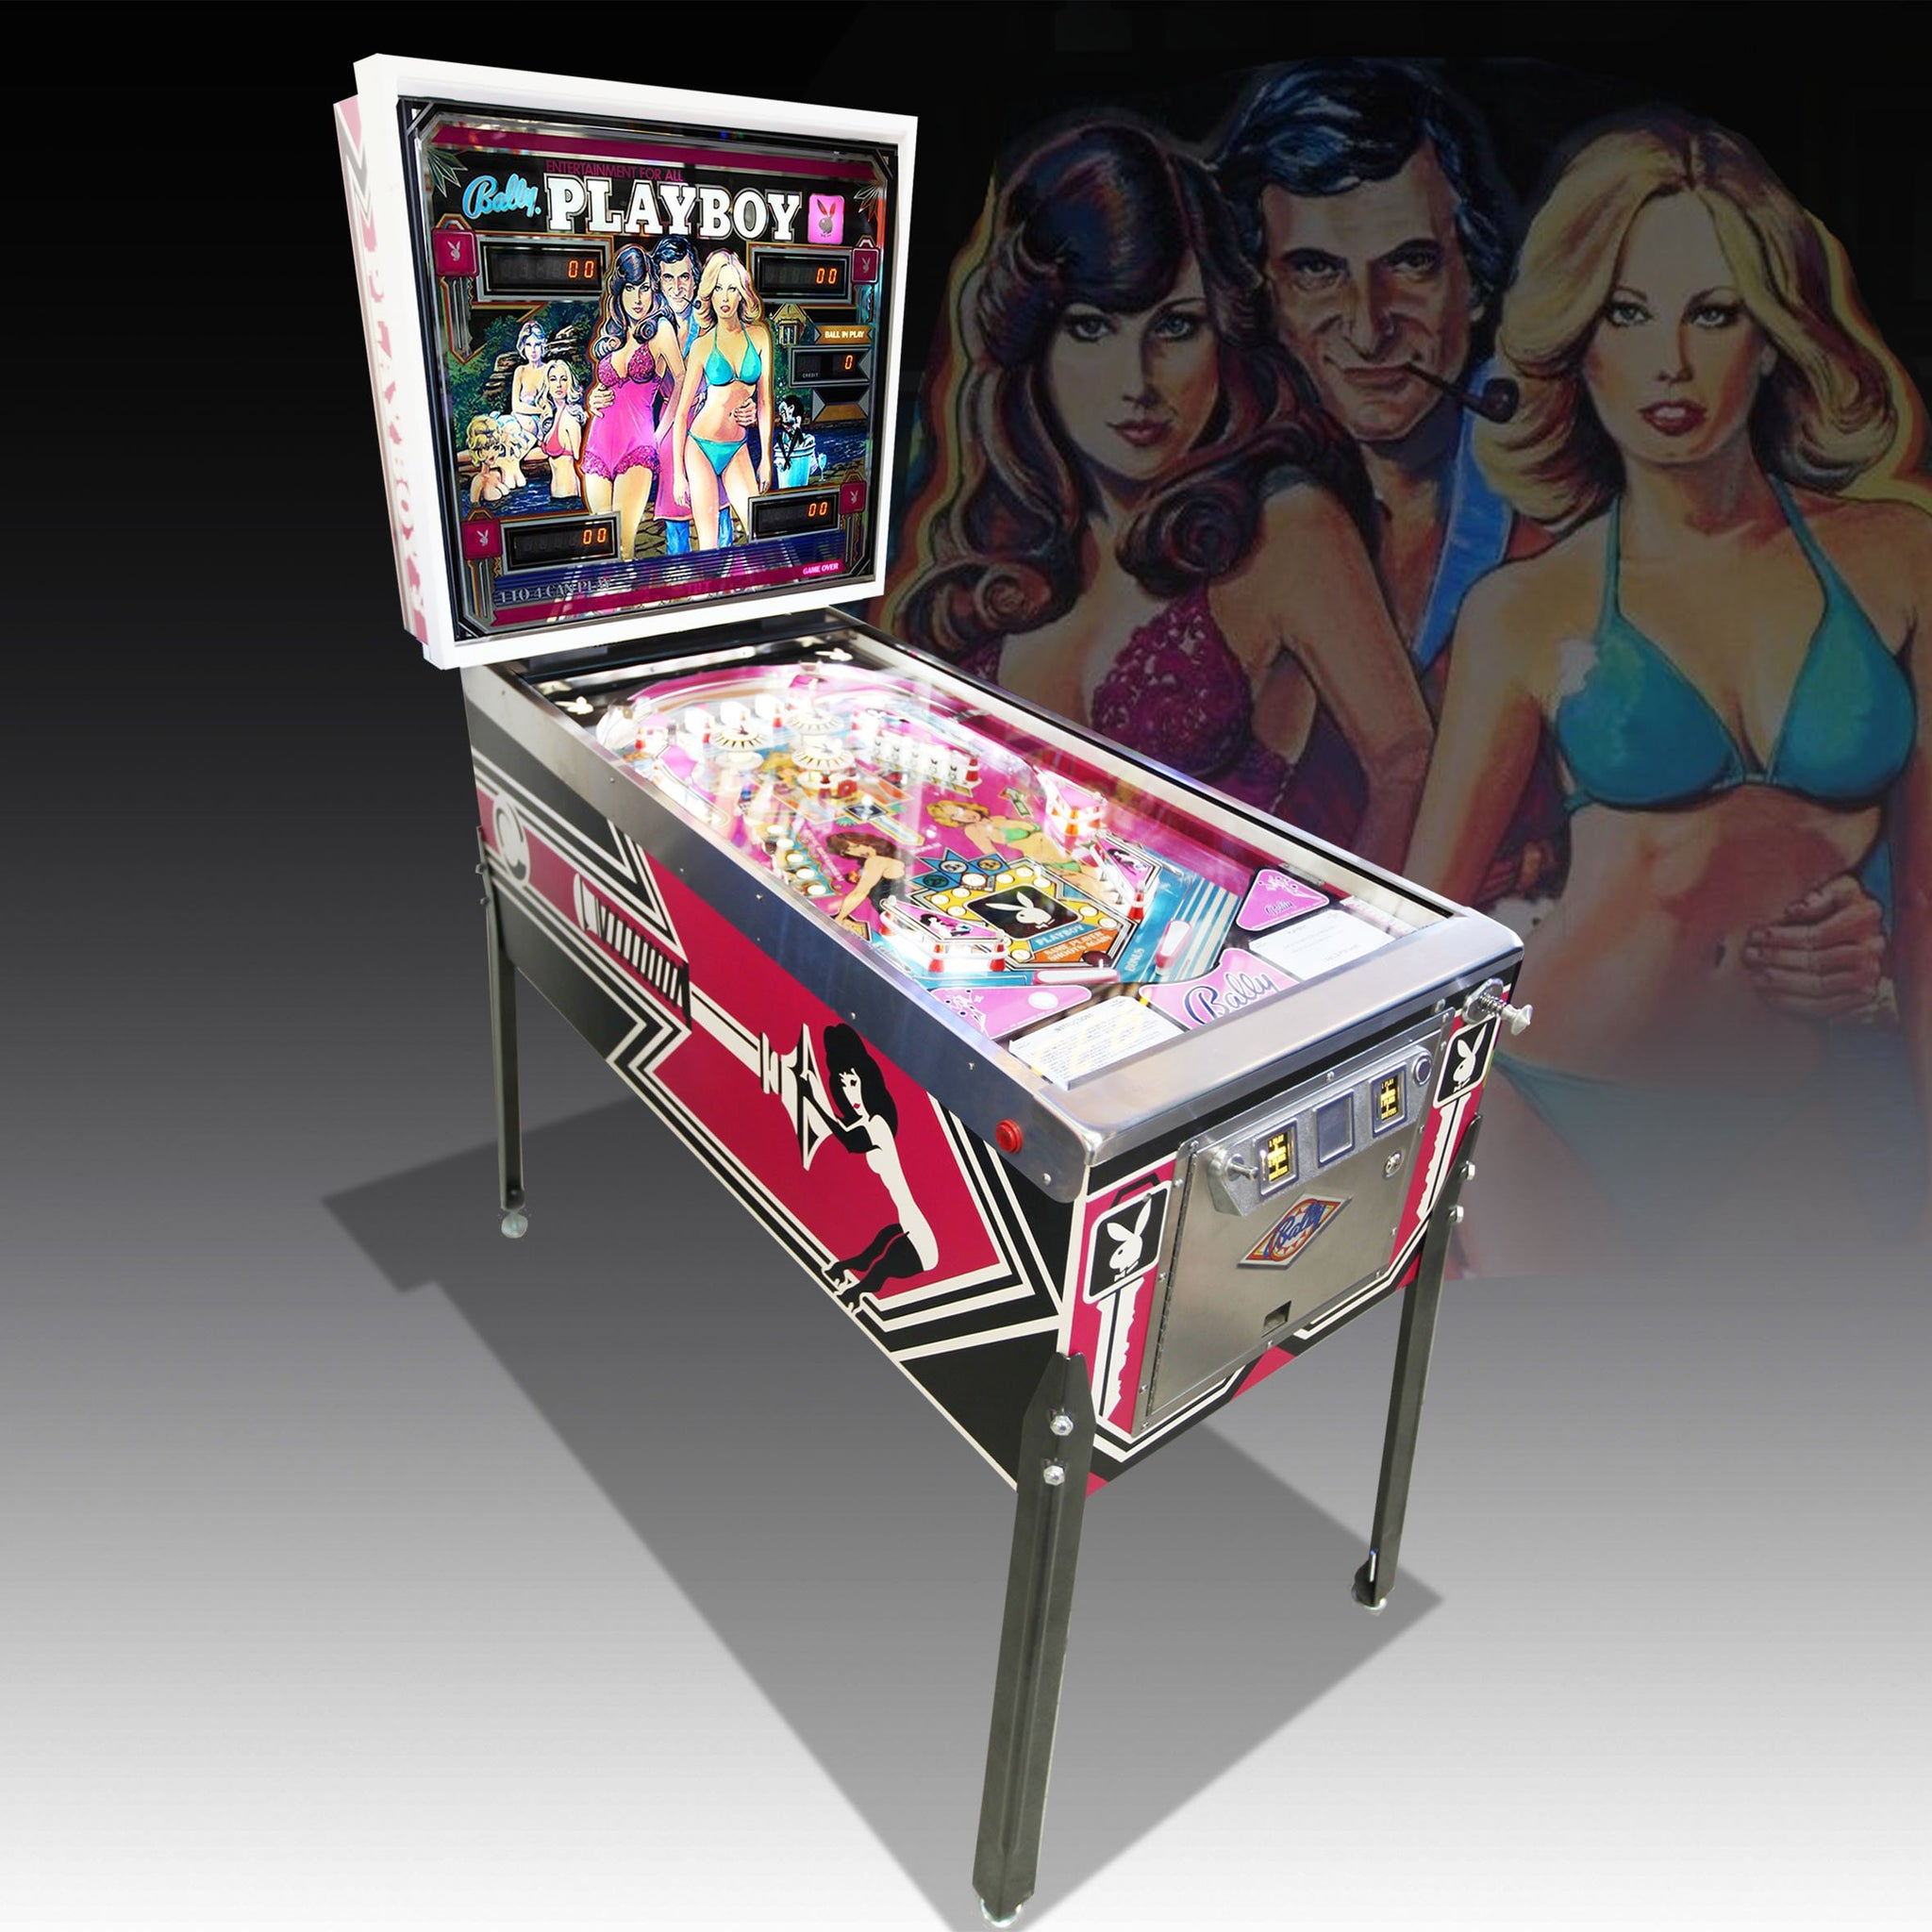 Playboy Pinball Machine 'Coming Soon'